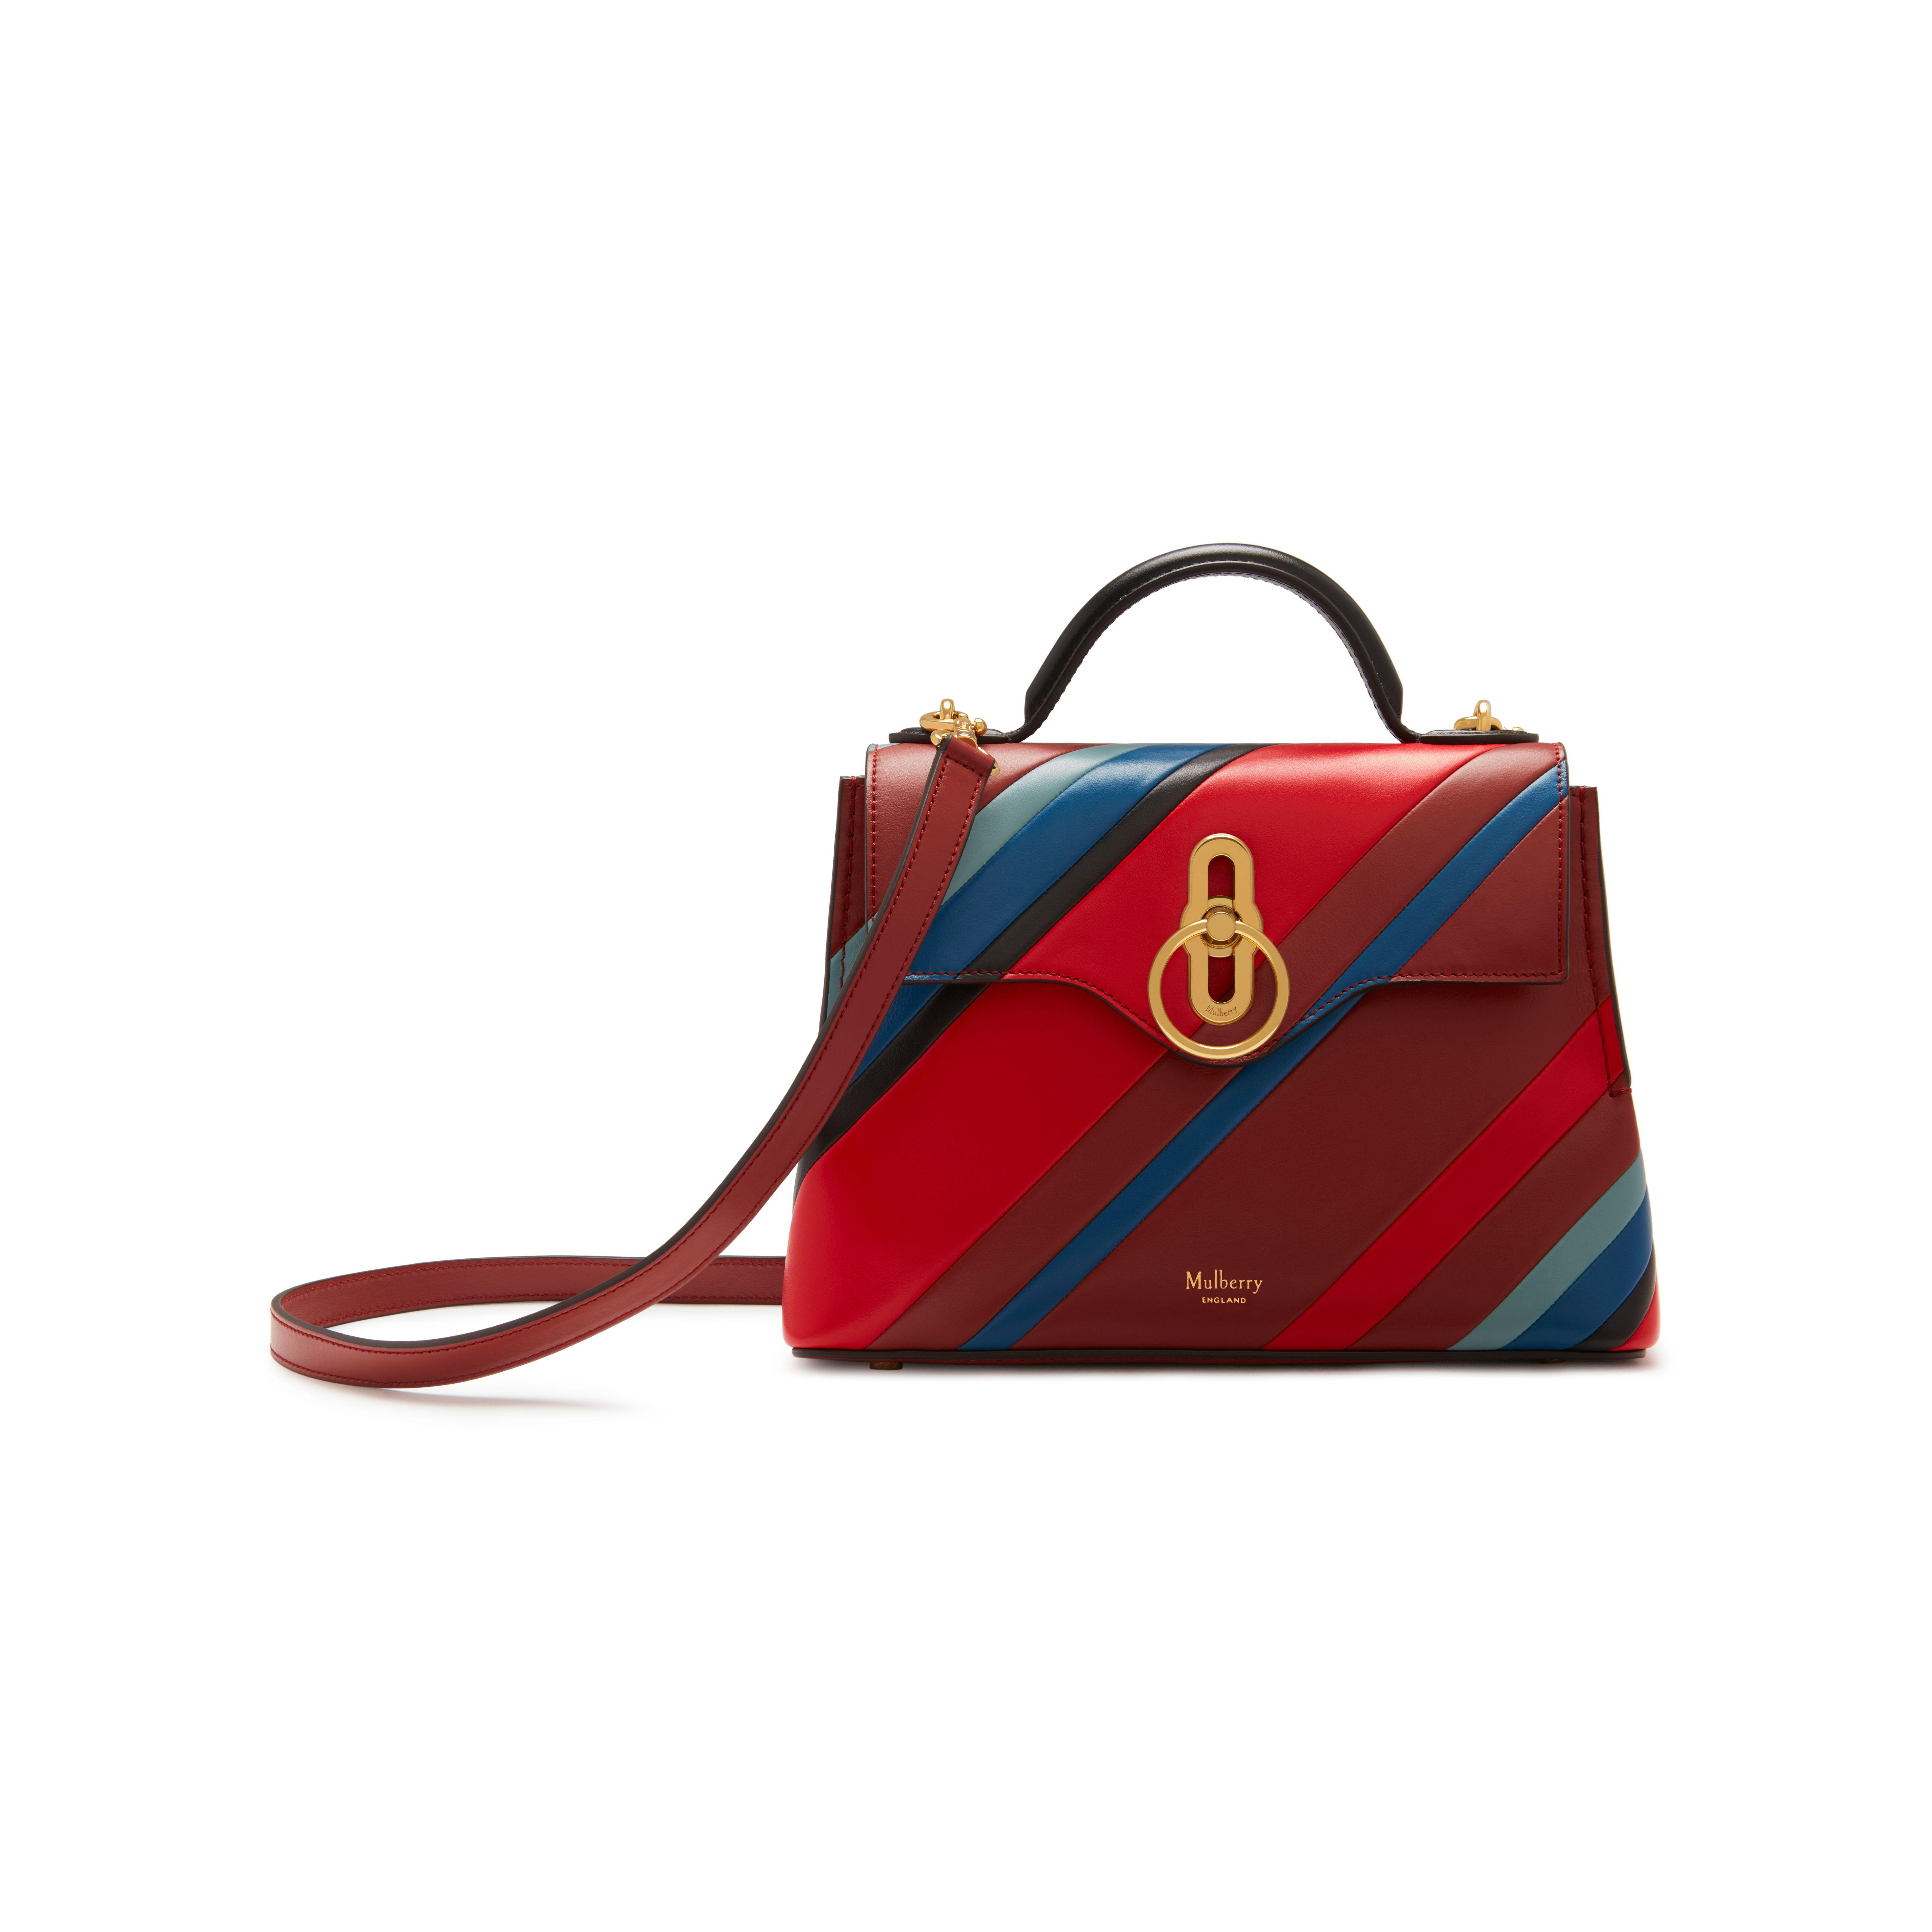 Lyst - Mulberry Mini Seaton in Red 9b5a6446ca360